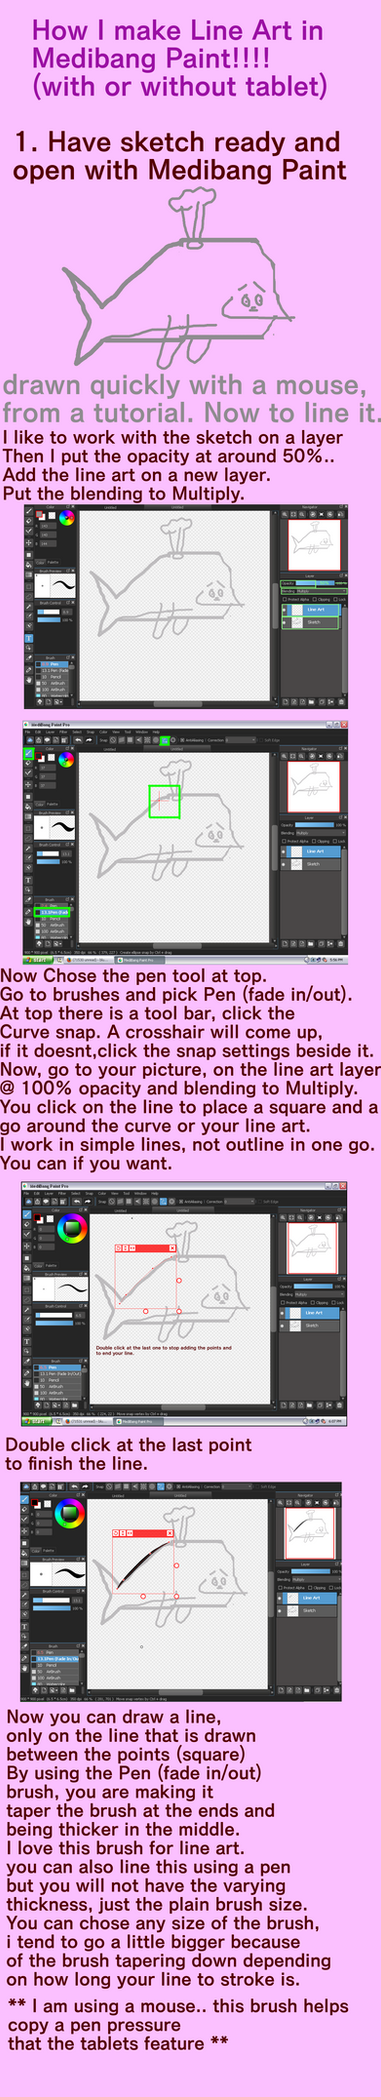 Tutorial for line art in medibang paint by crochetamommy on deviantart tutorial for line art in medibang paint by crochetamommy baditri Gallery